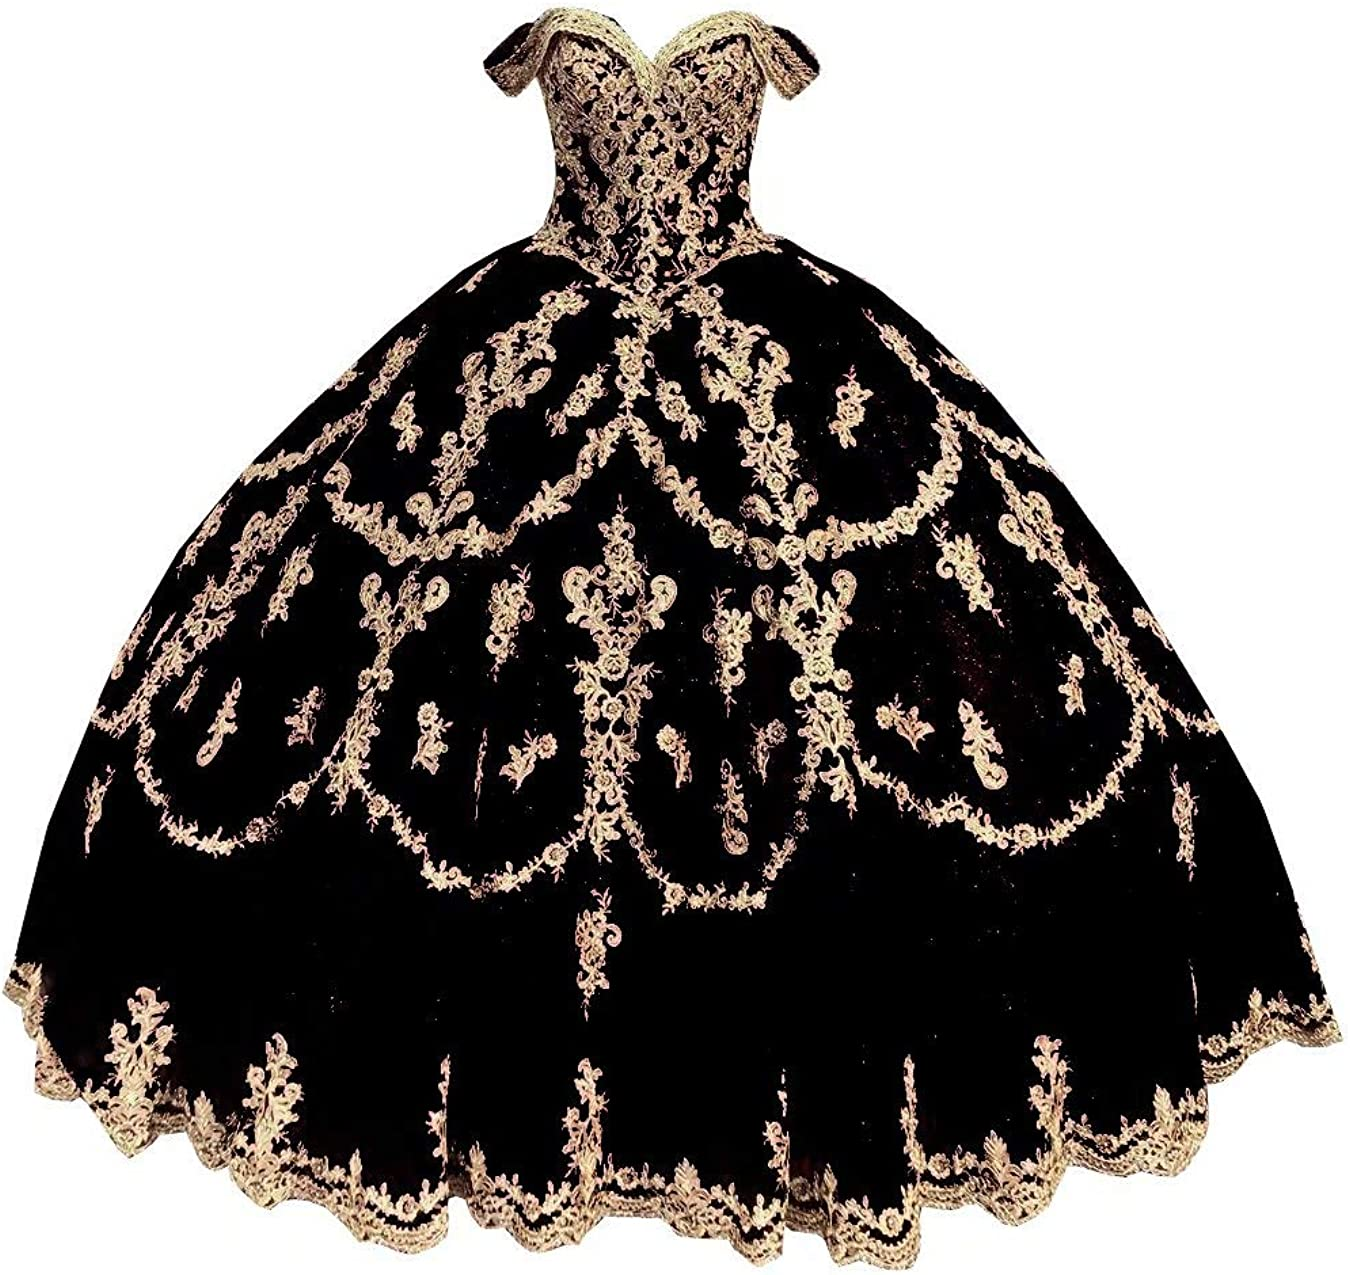 Gold Embroidered Patterned Glitter Tulle Off Shoulders A line Prom Quinceanera Dresses Mexican 2021 Charro with Sleeves